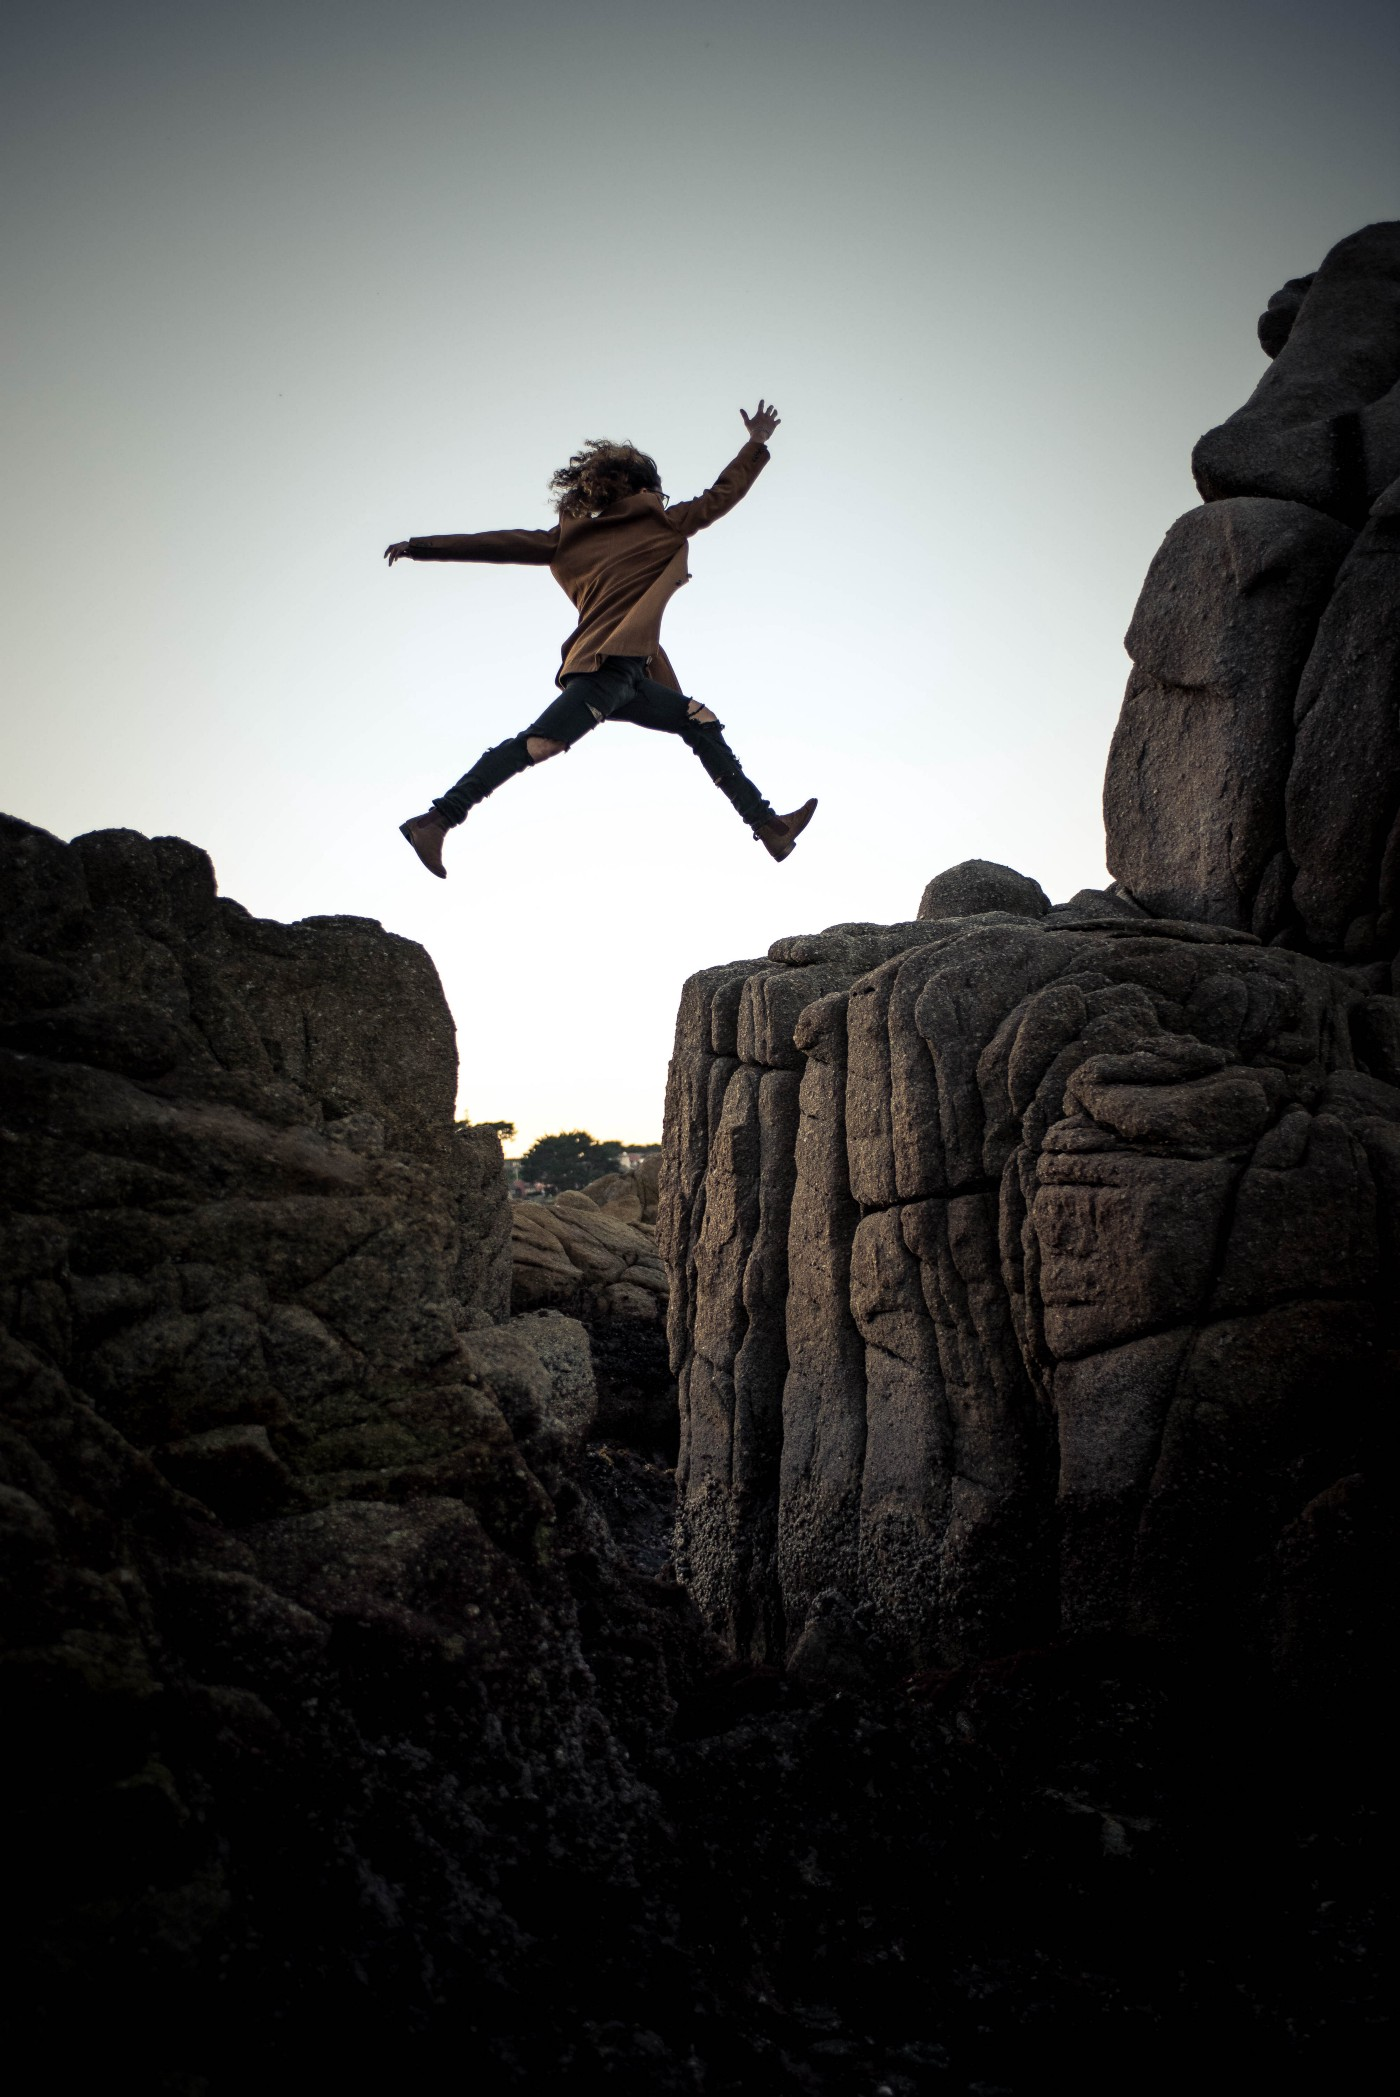 Man or Woman Jumping between two ledges